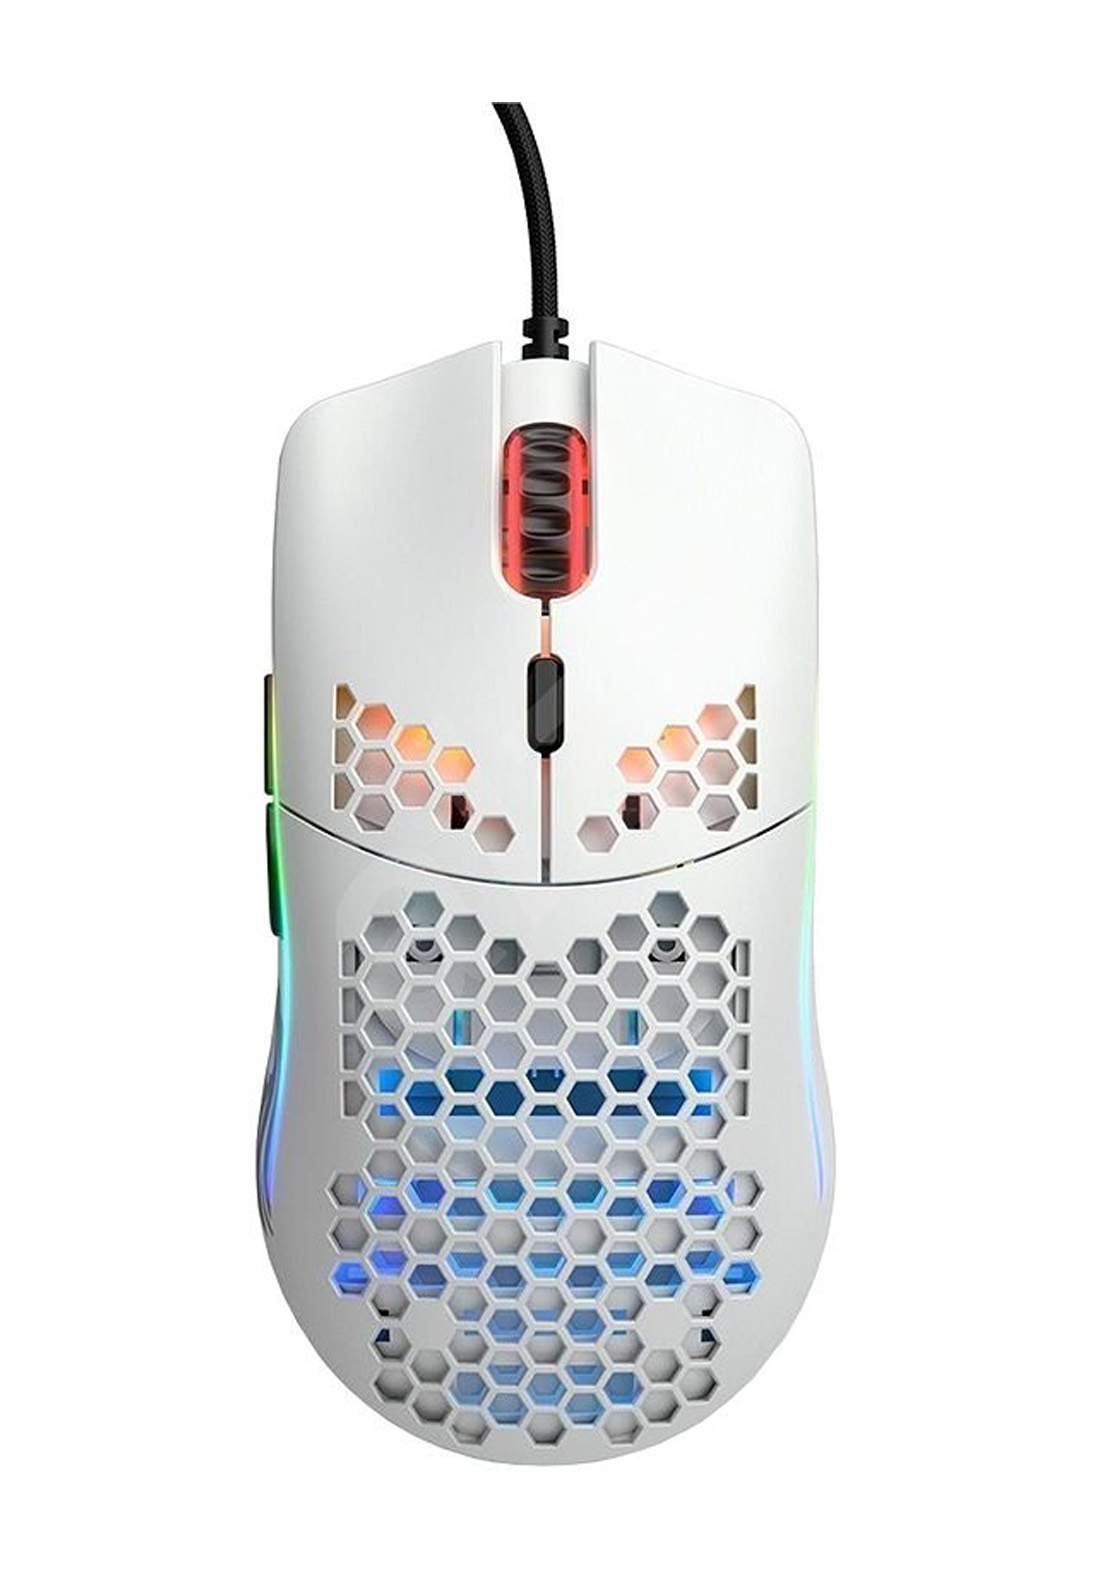 Glorious Model O Matte White Gaming Mouse